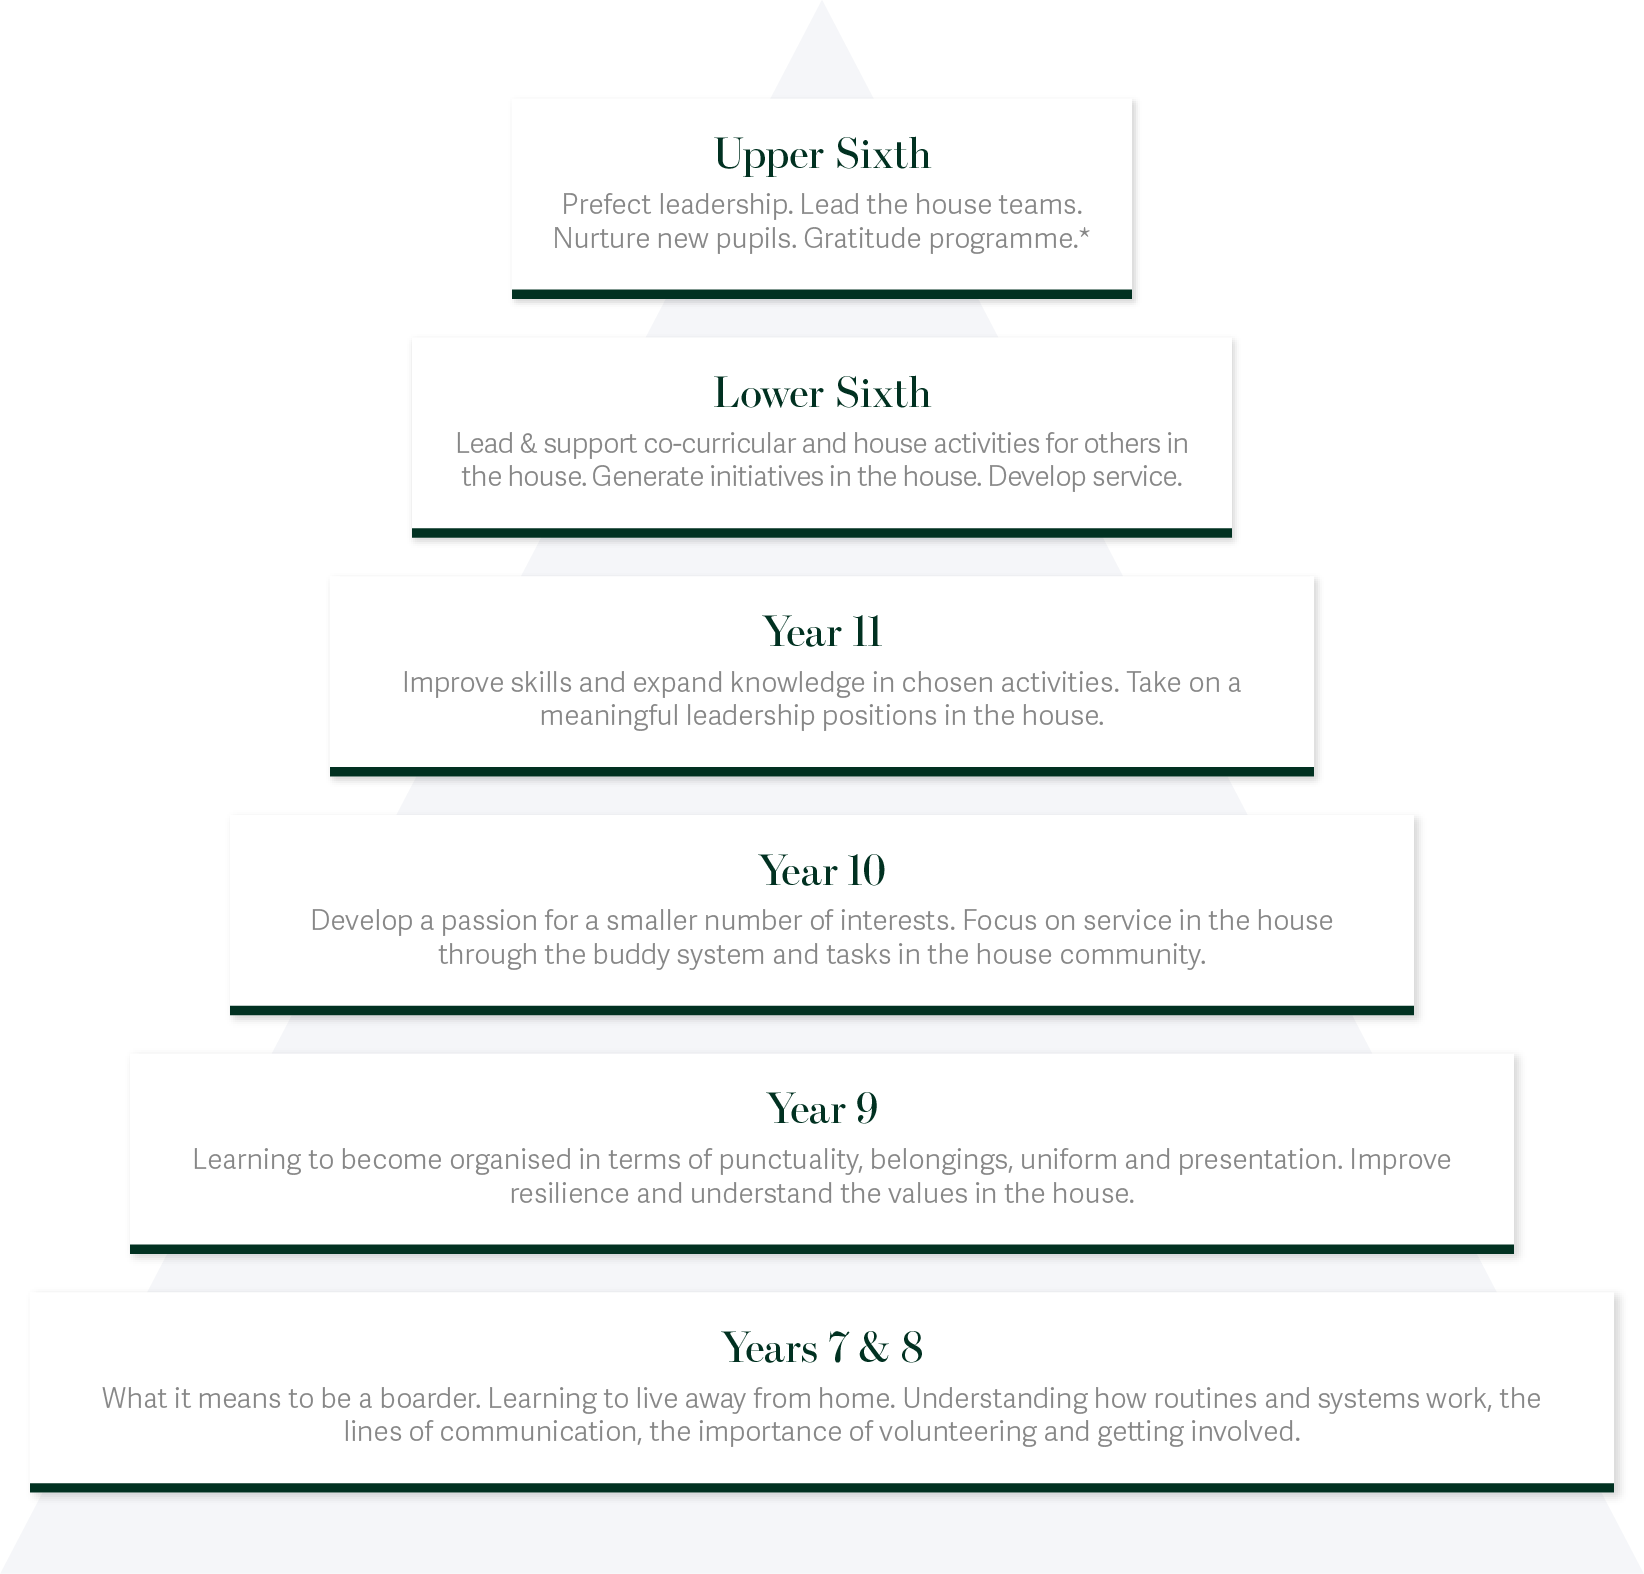 Boarding Programme Pyramid